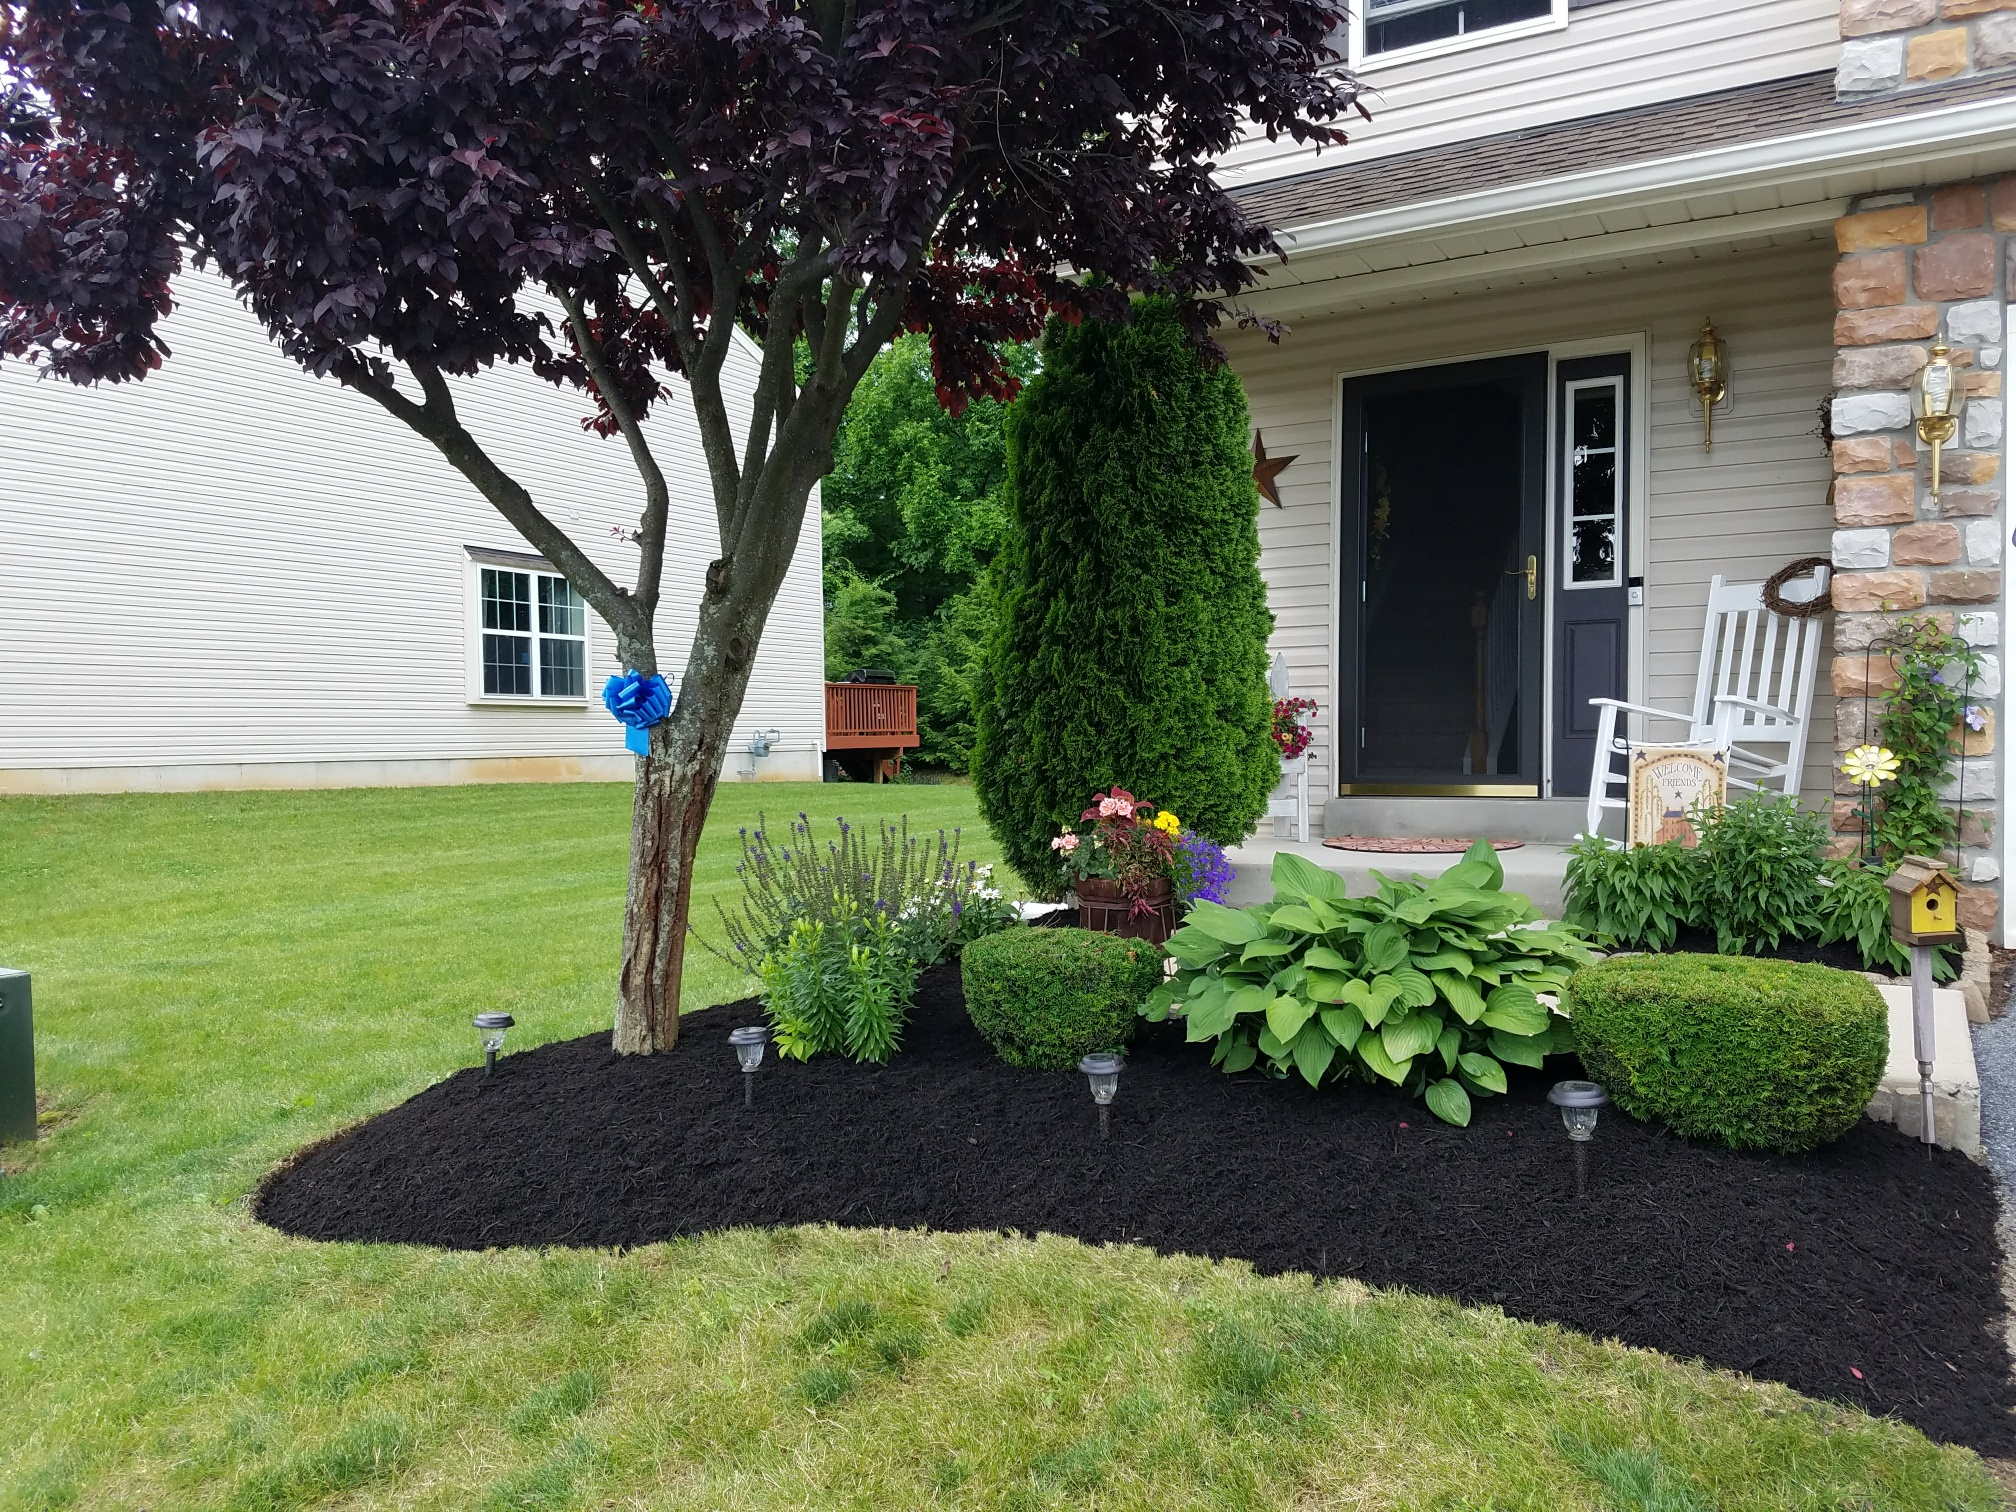 Landscaping precision landscaping services llc for Landscaping services